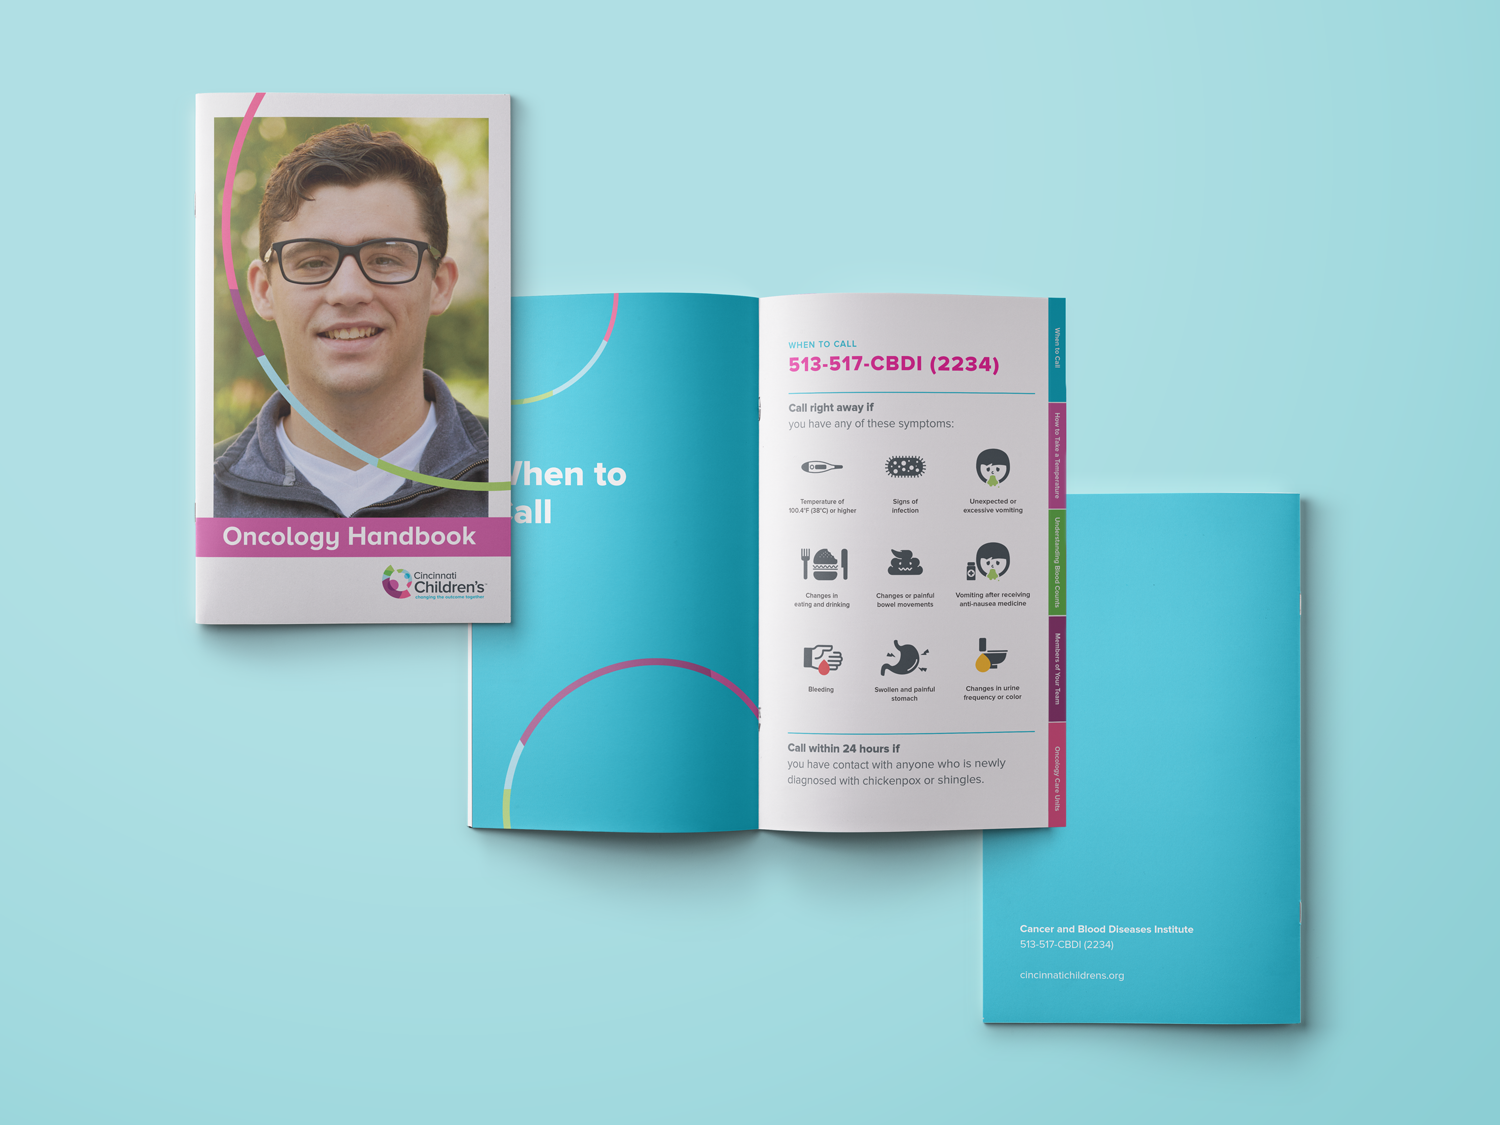 Oncology Handbook front and back covers and spread